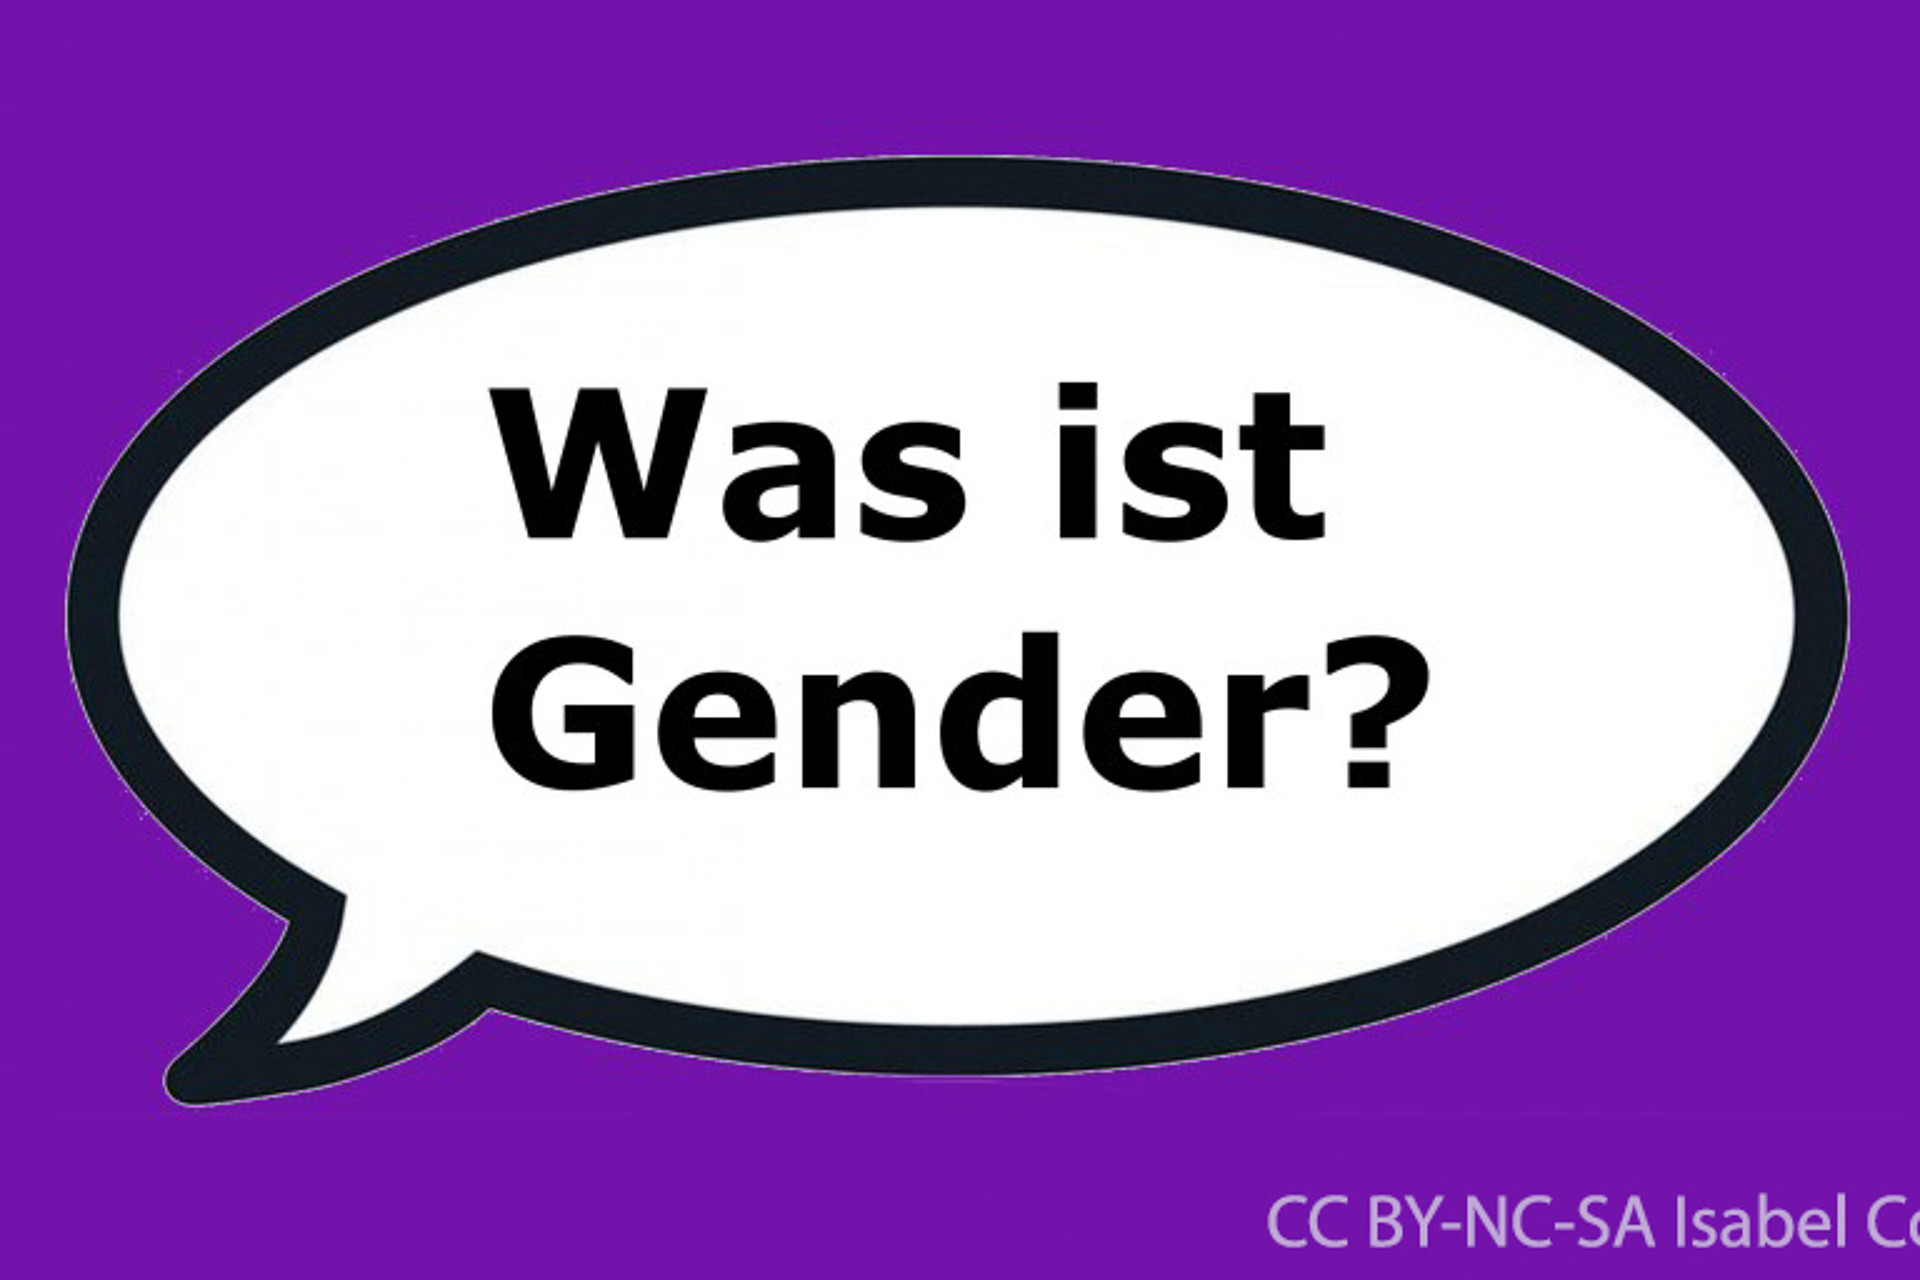 Was ist Gender?